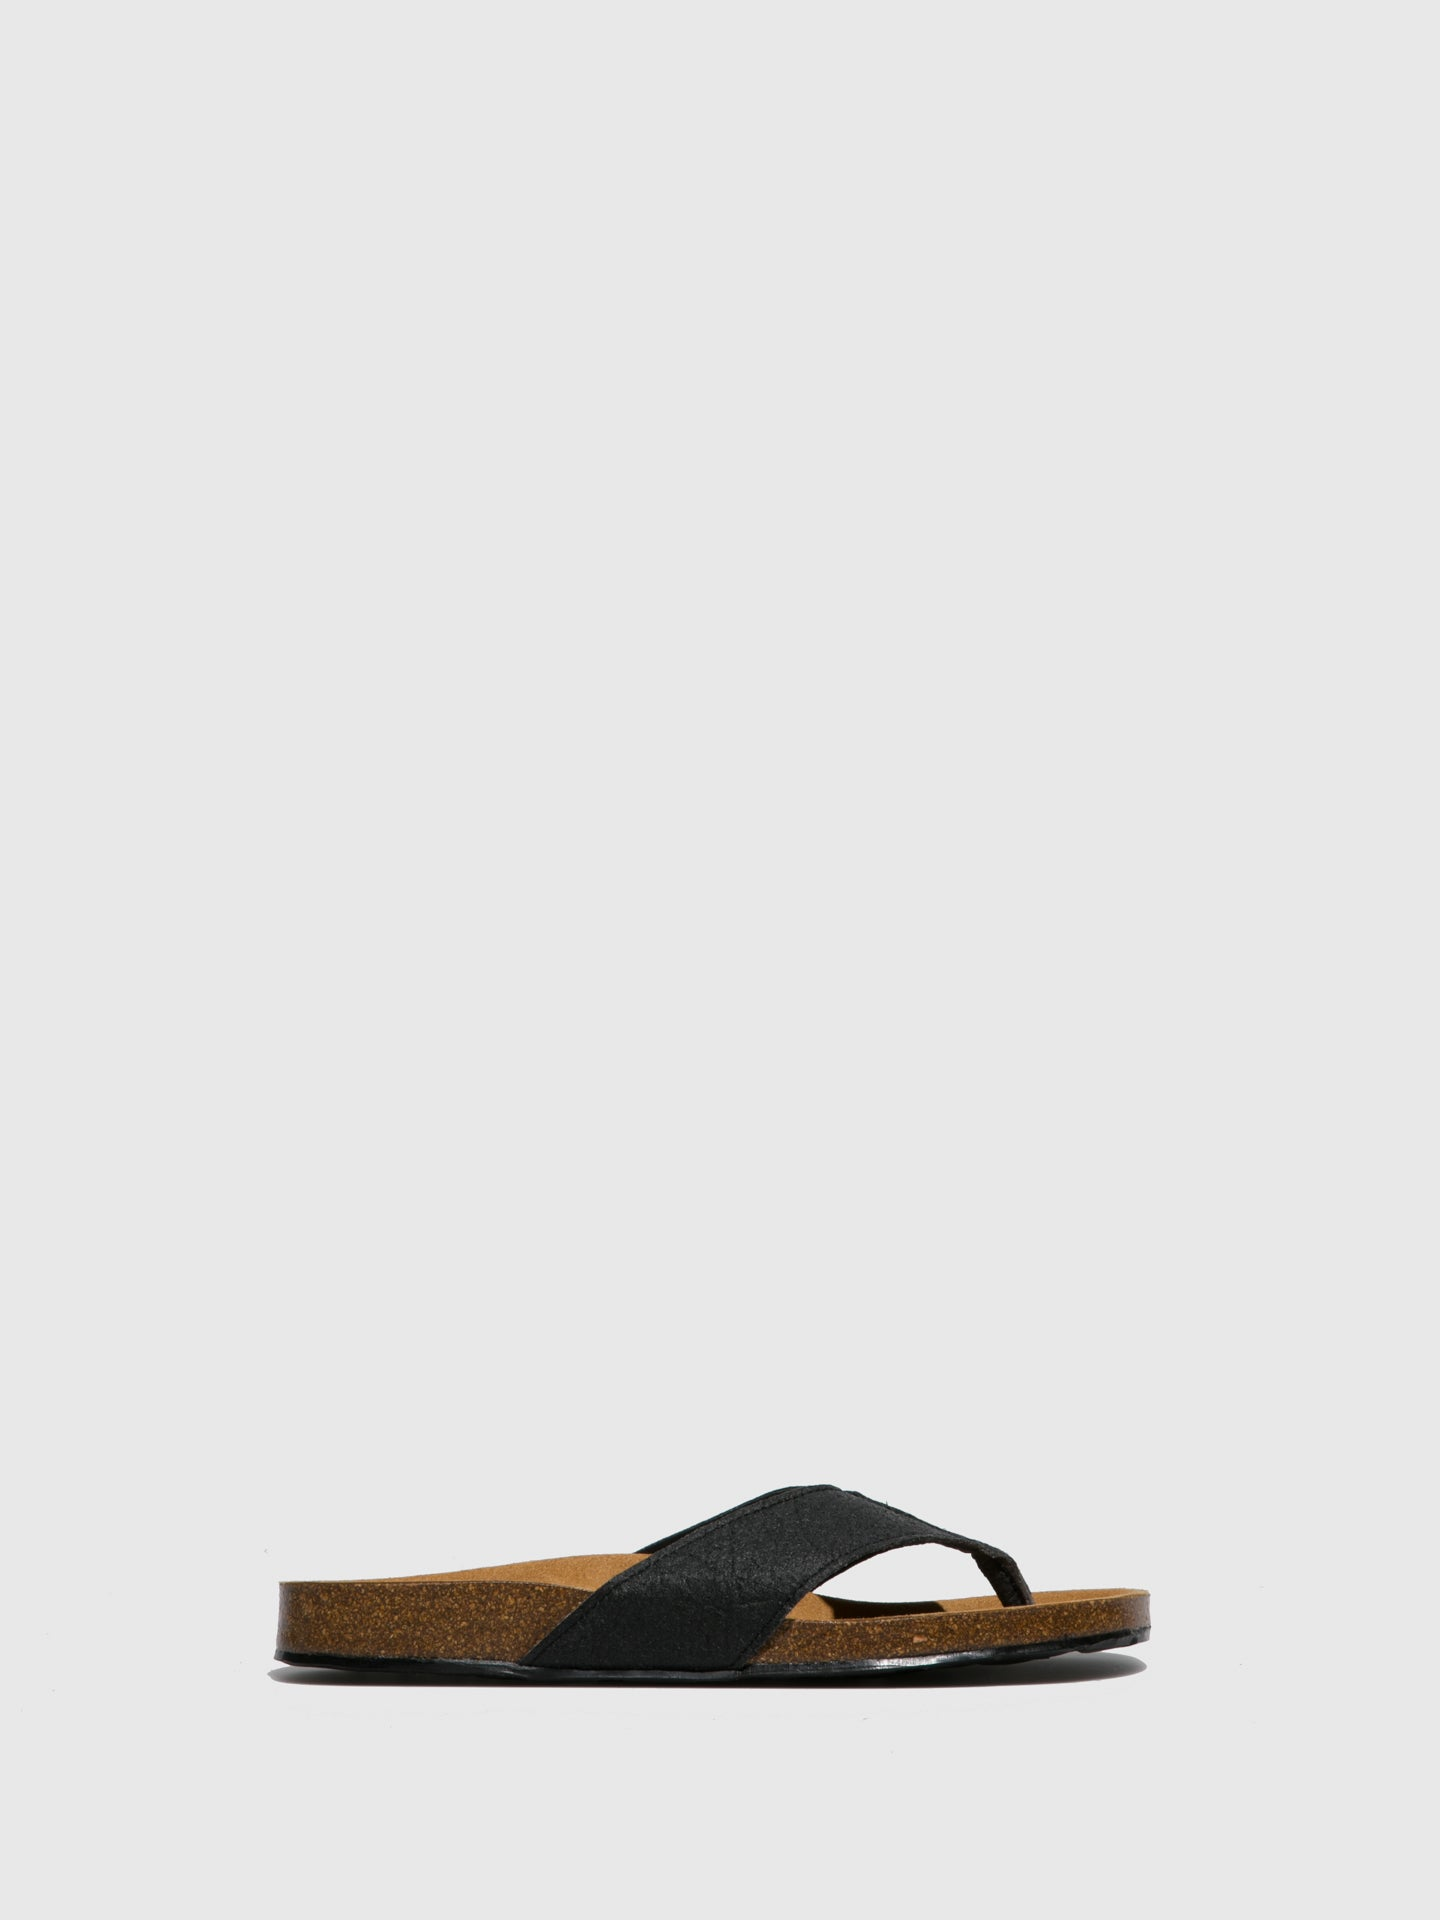 NAE Vegan Shoes Black T-Strap Sandals